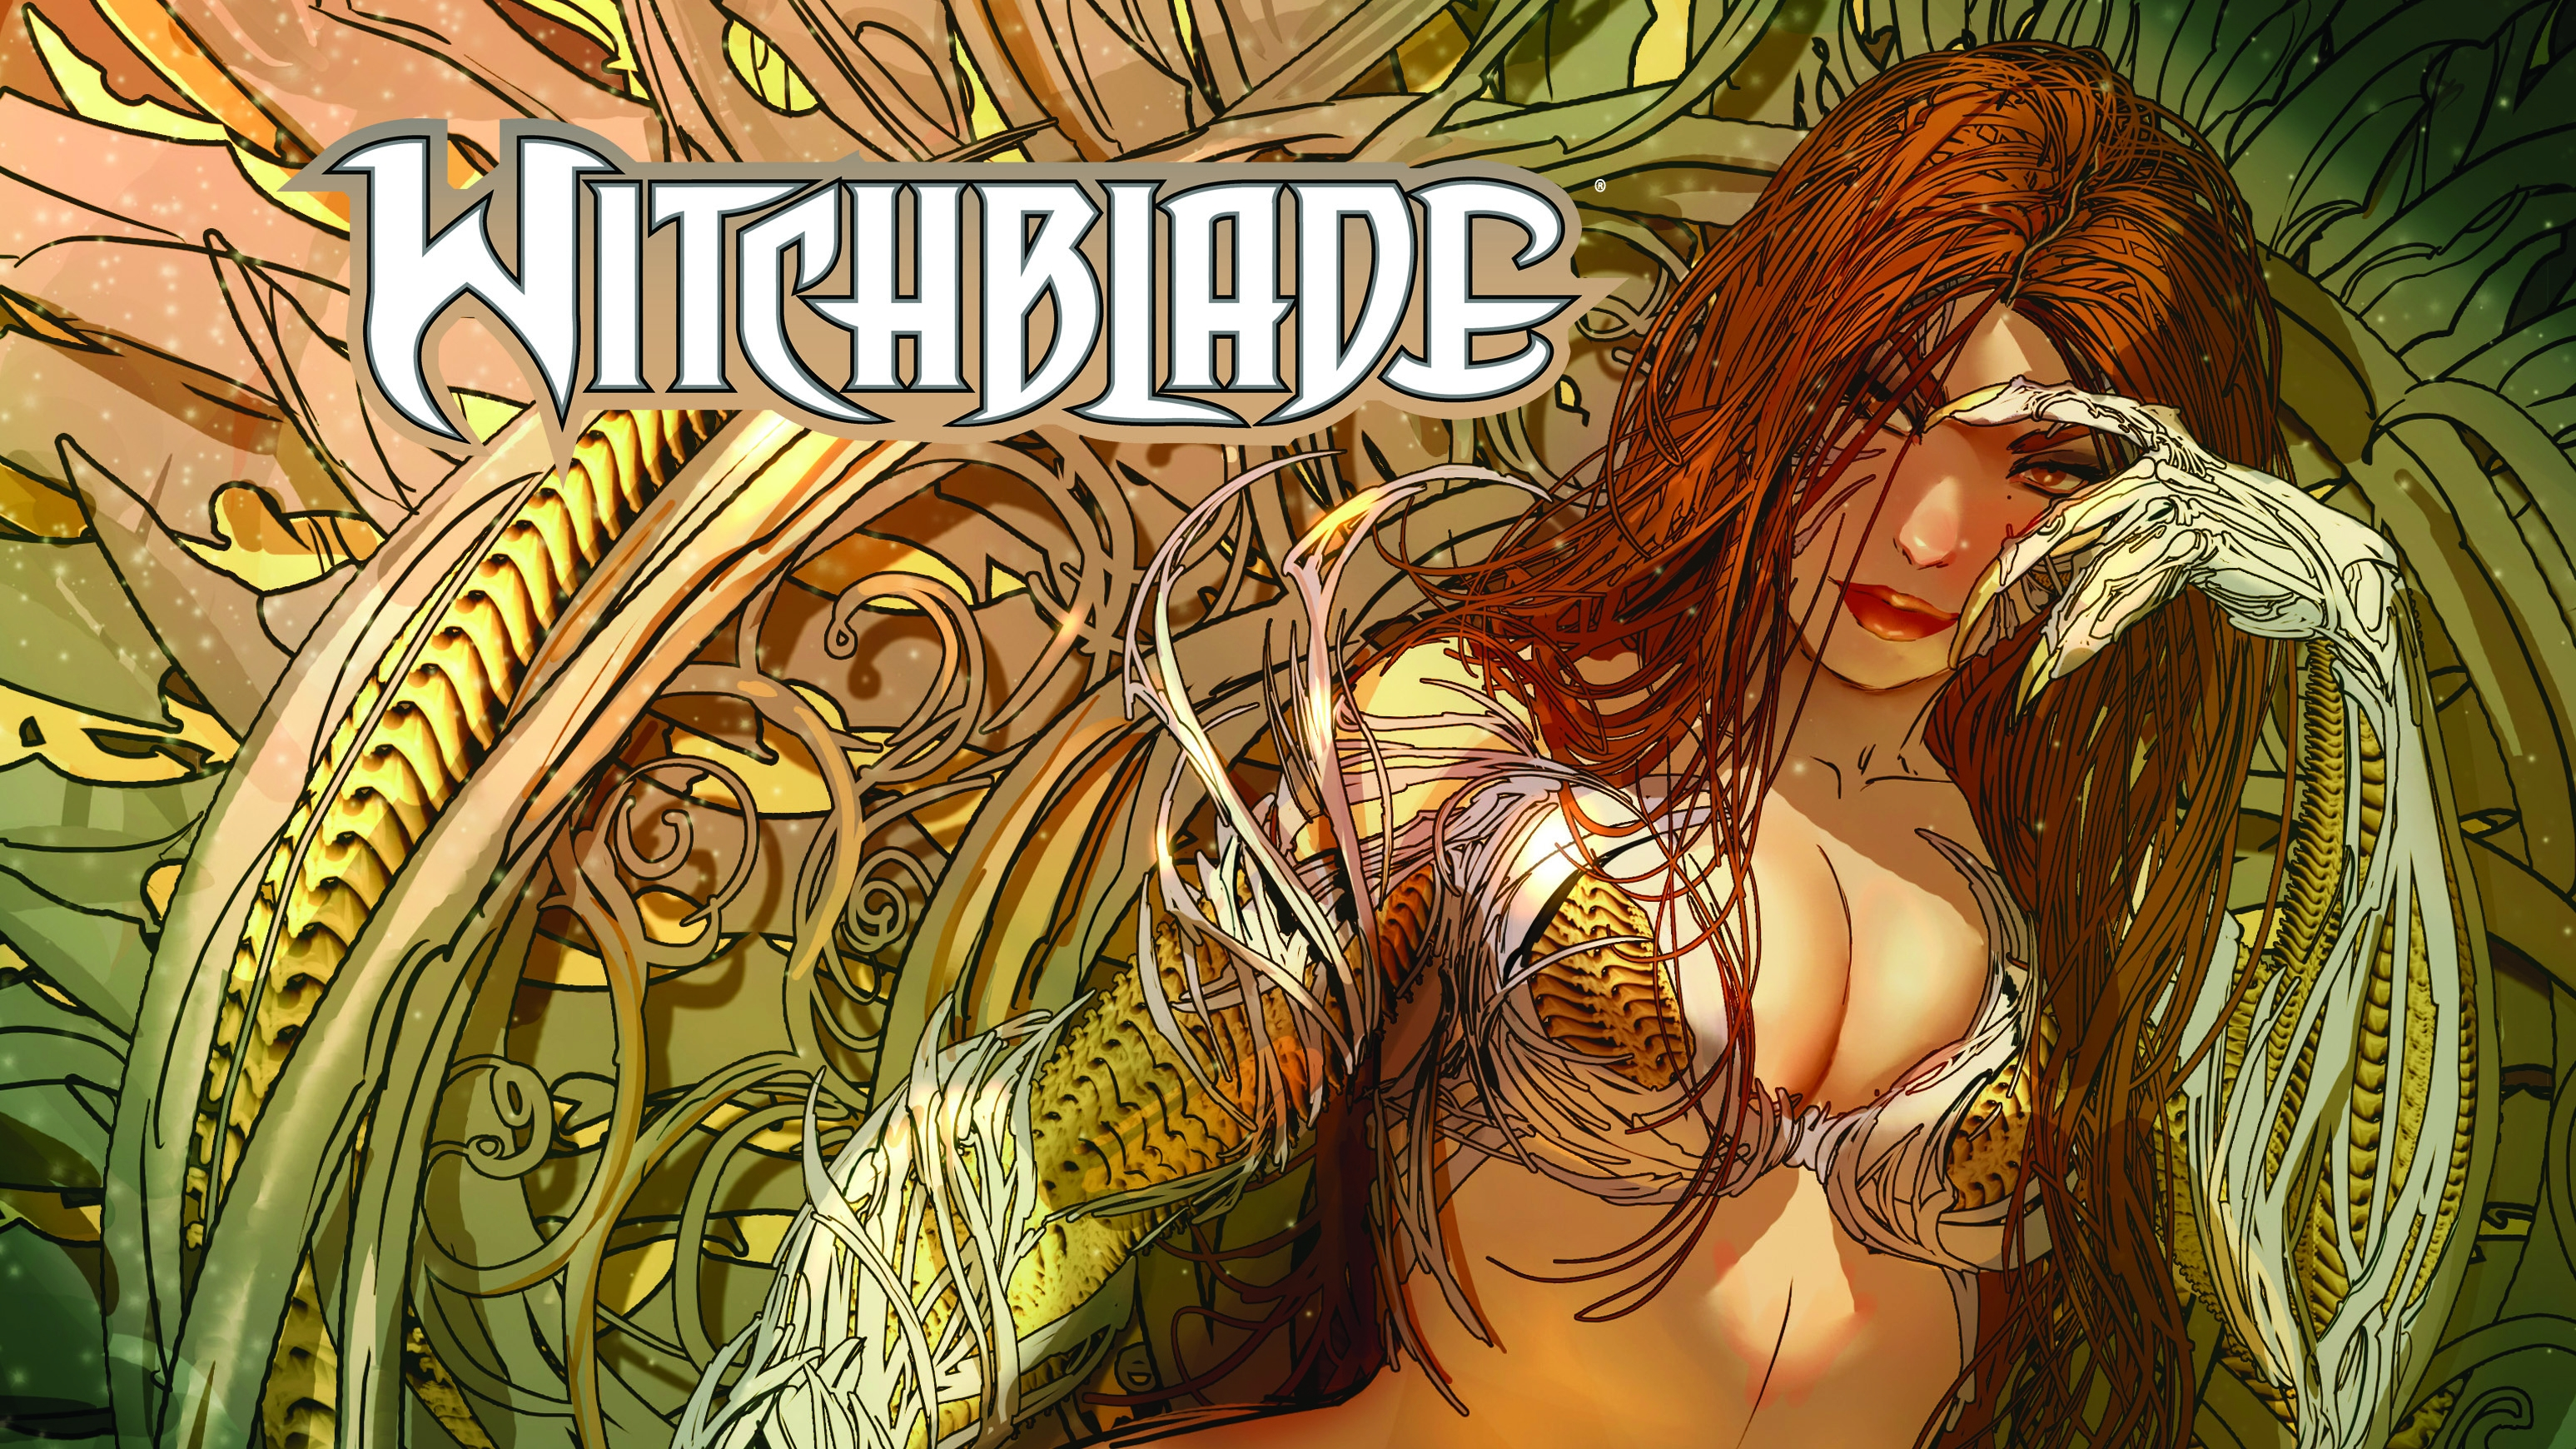 Witchblade Wallpaper